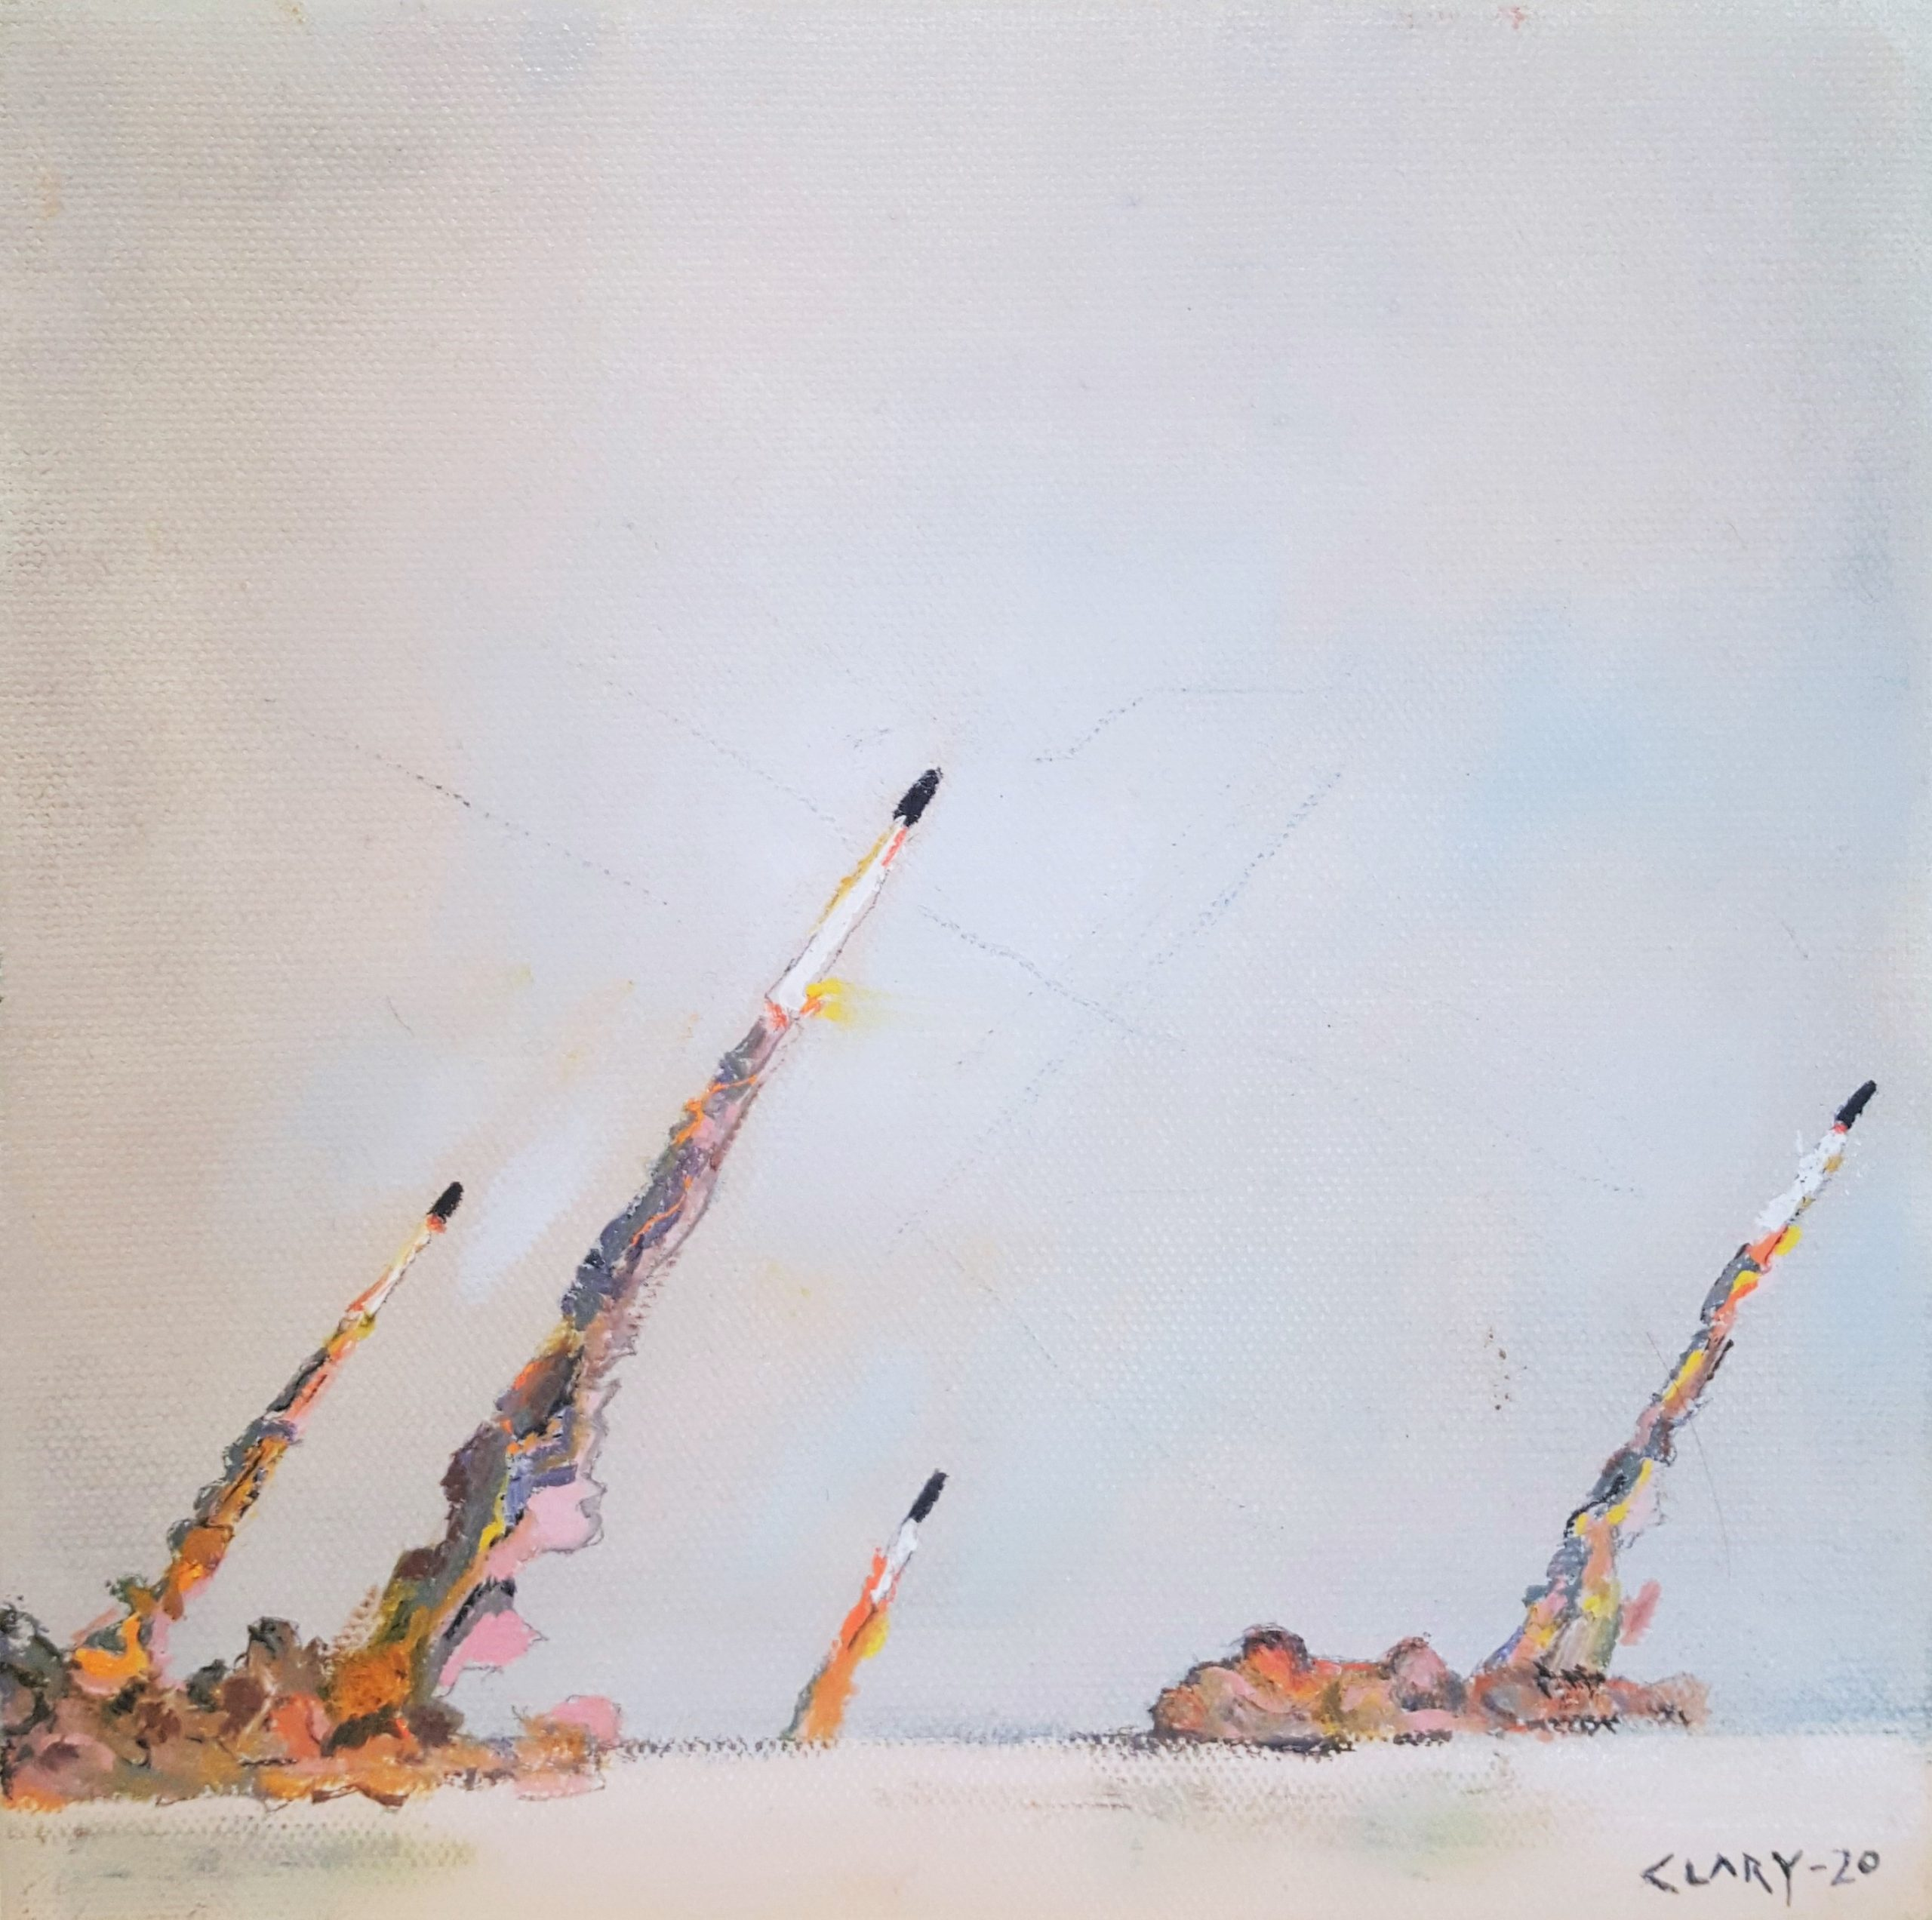 Exocet missiles